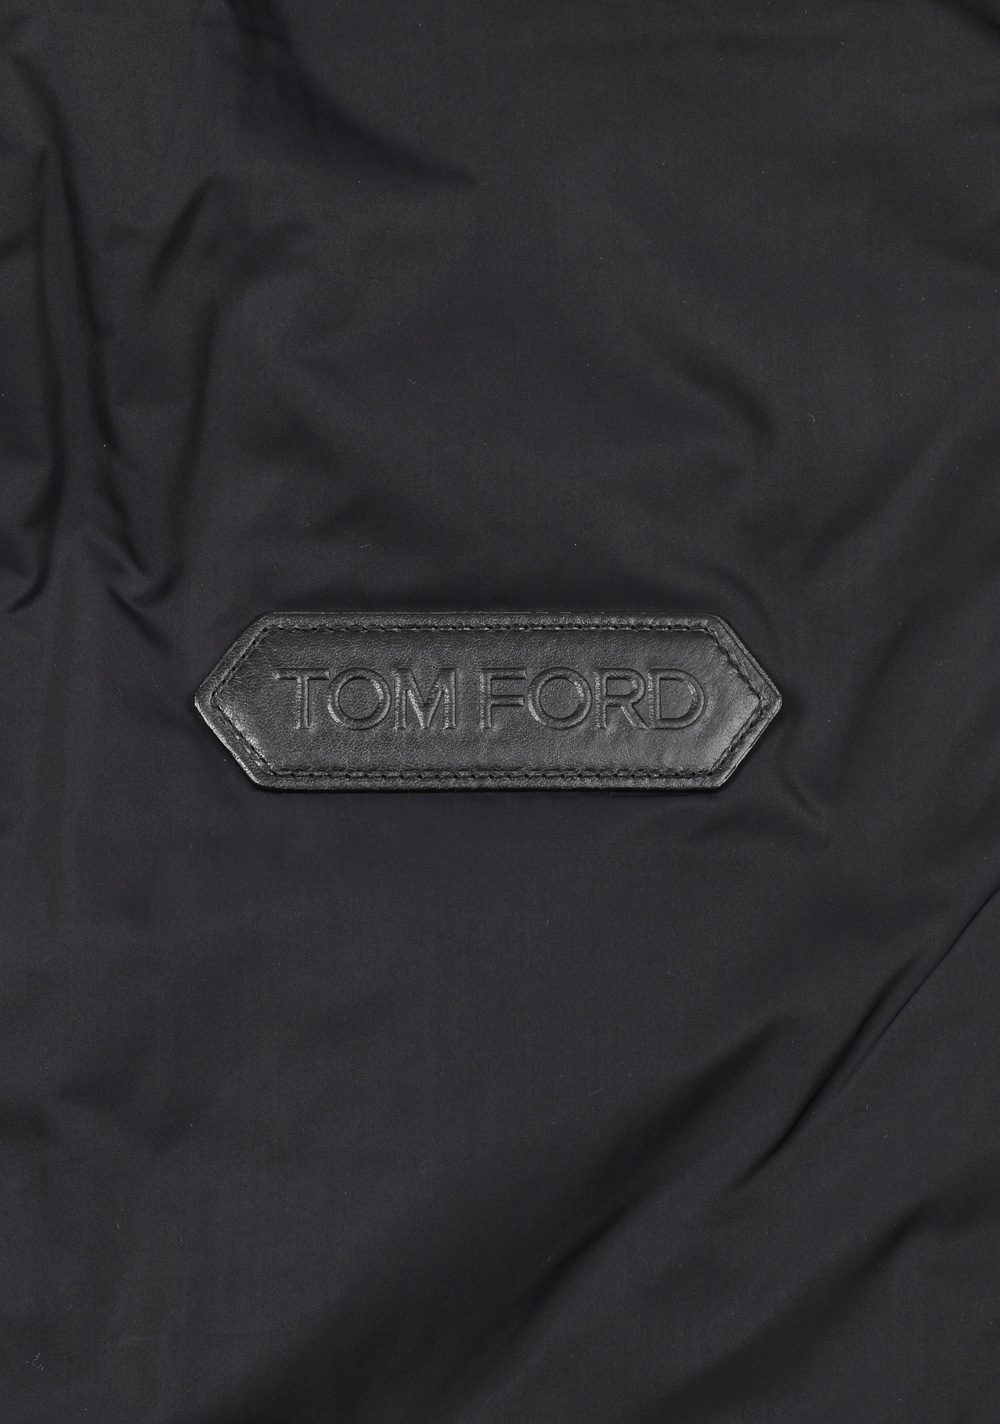 TOM FORD Black James Bond Spectre Knitted Sleeve Bomber Jacket  Size 48 / 38R U.S. | Costume Limité